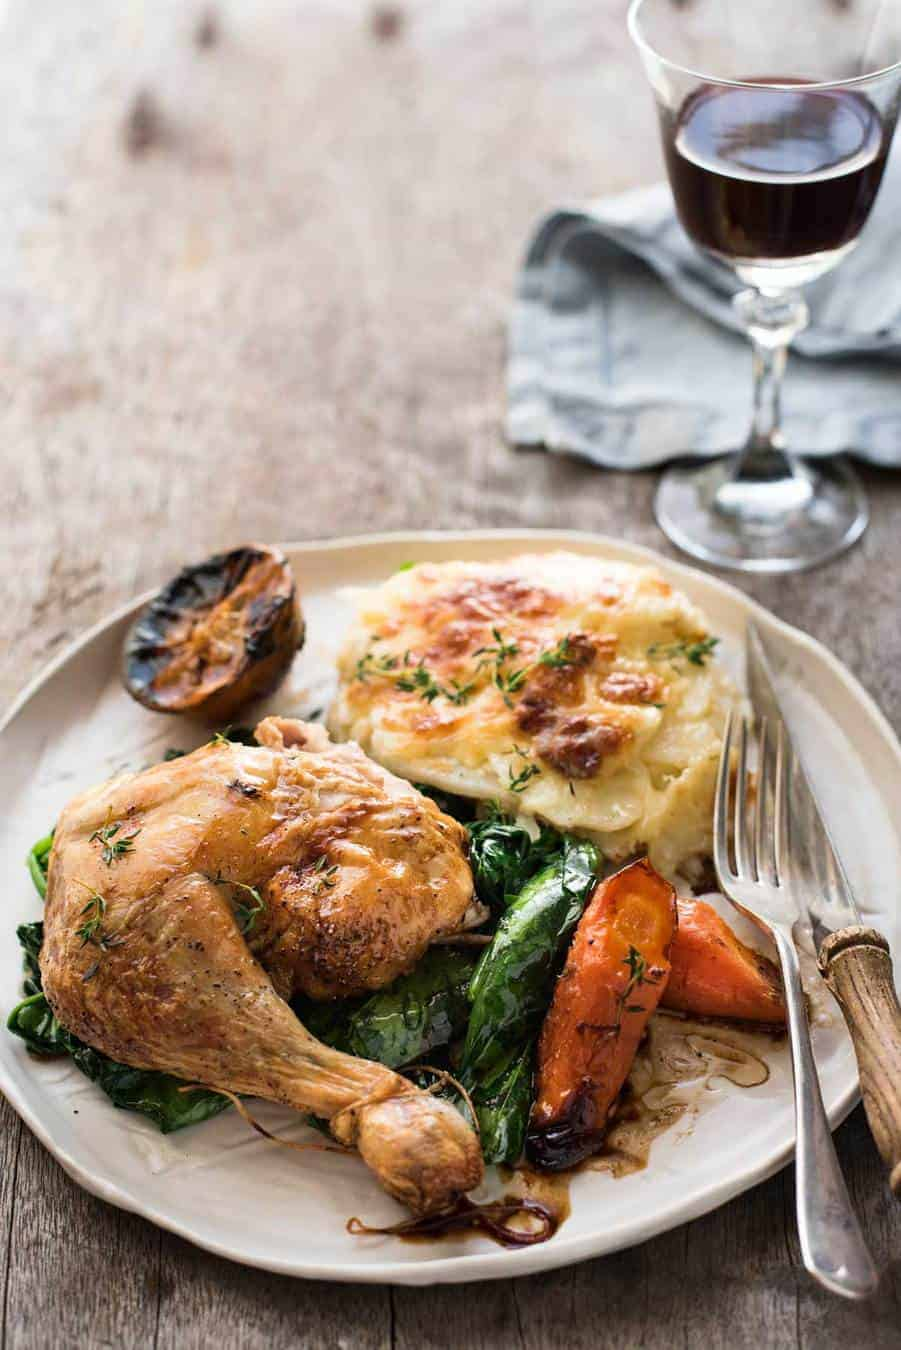 Classic Roast Chicken | I find the table for roasting times for different chicken sizes so useful!